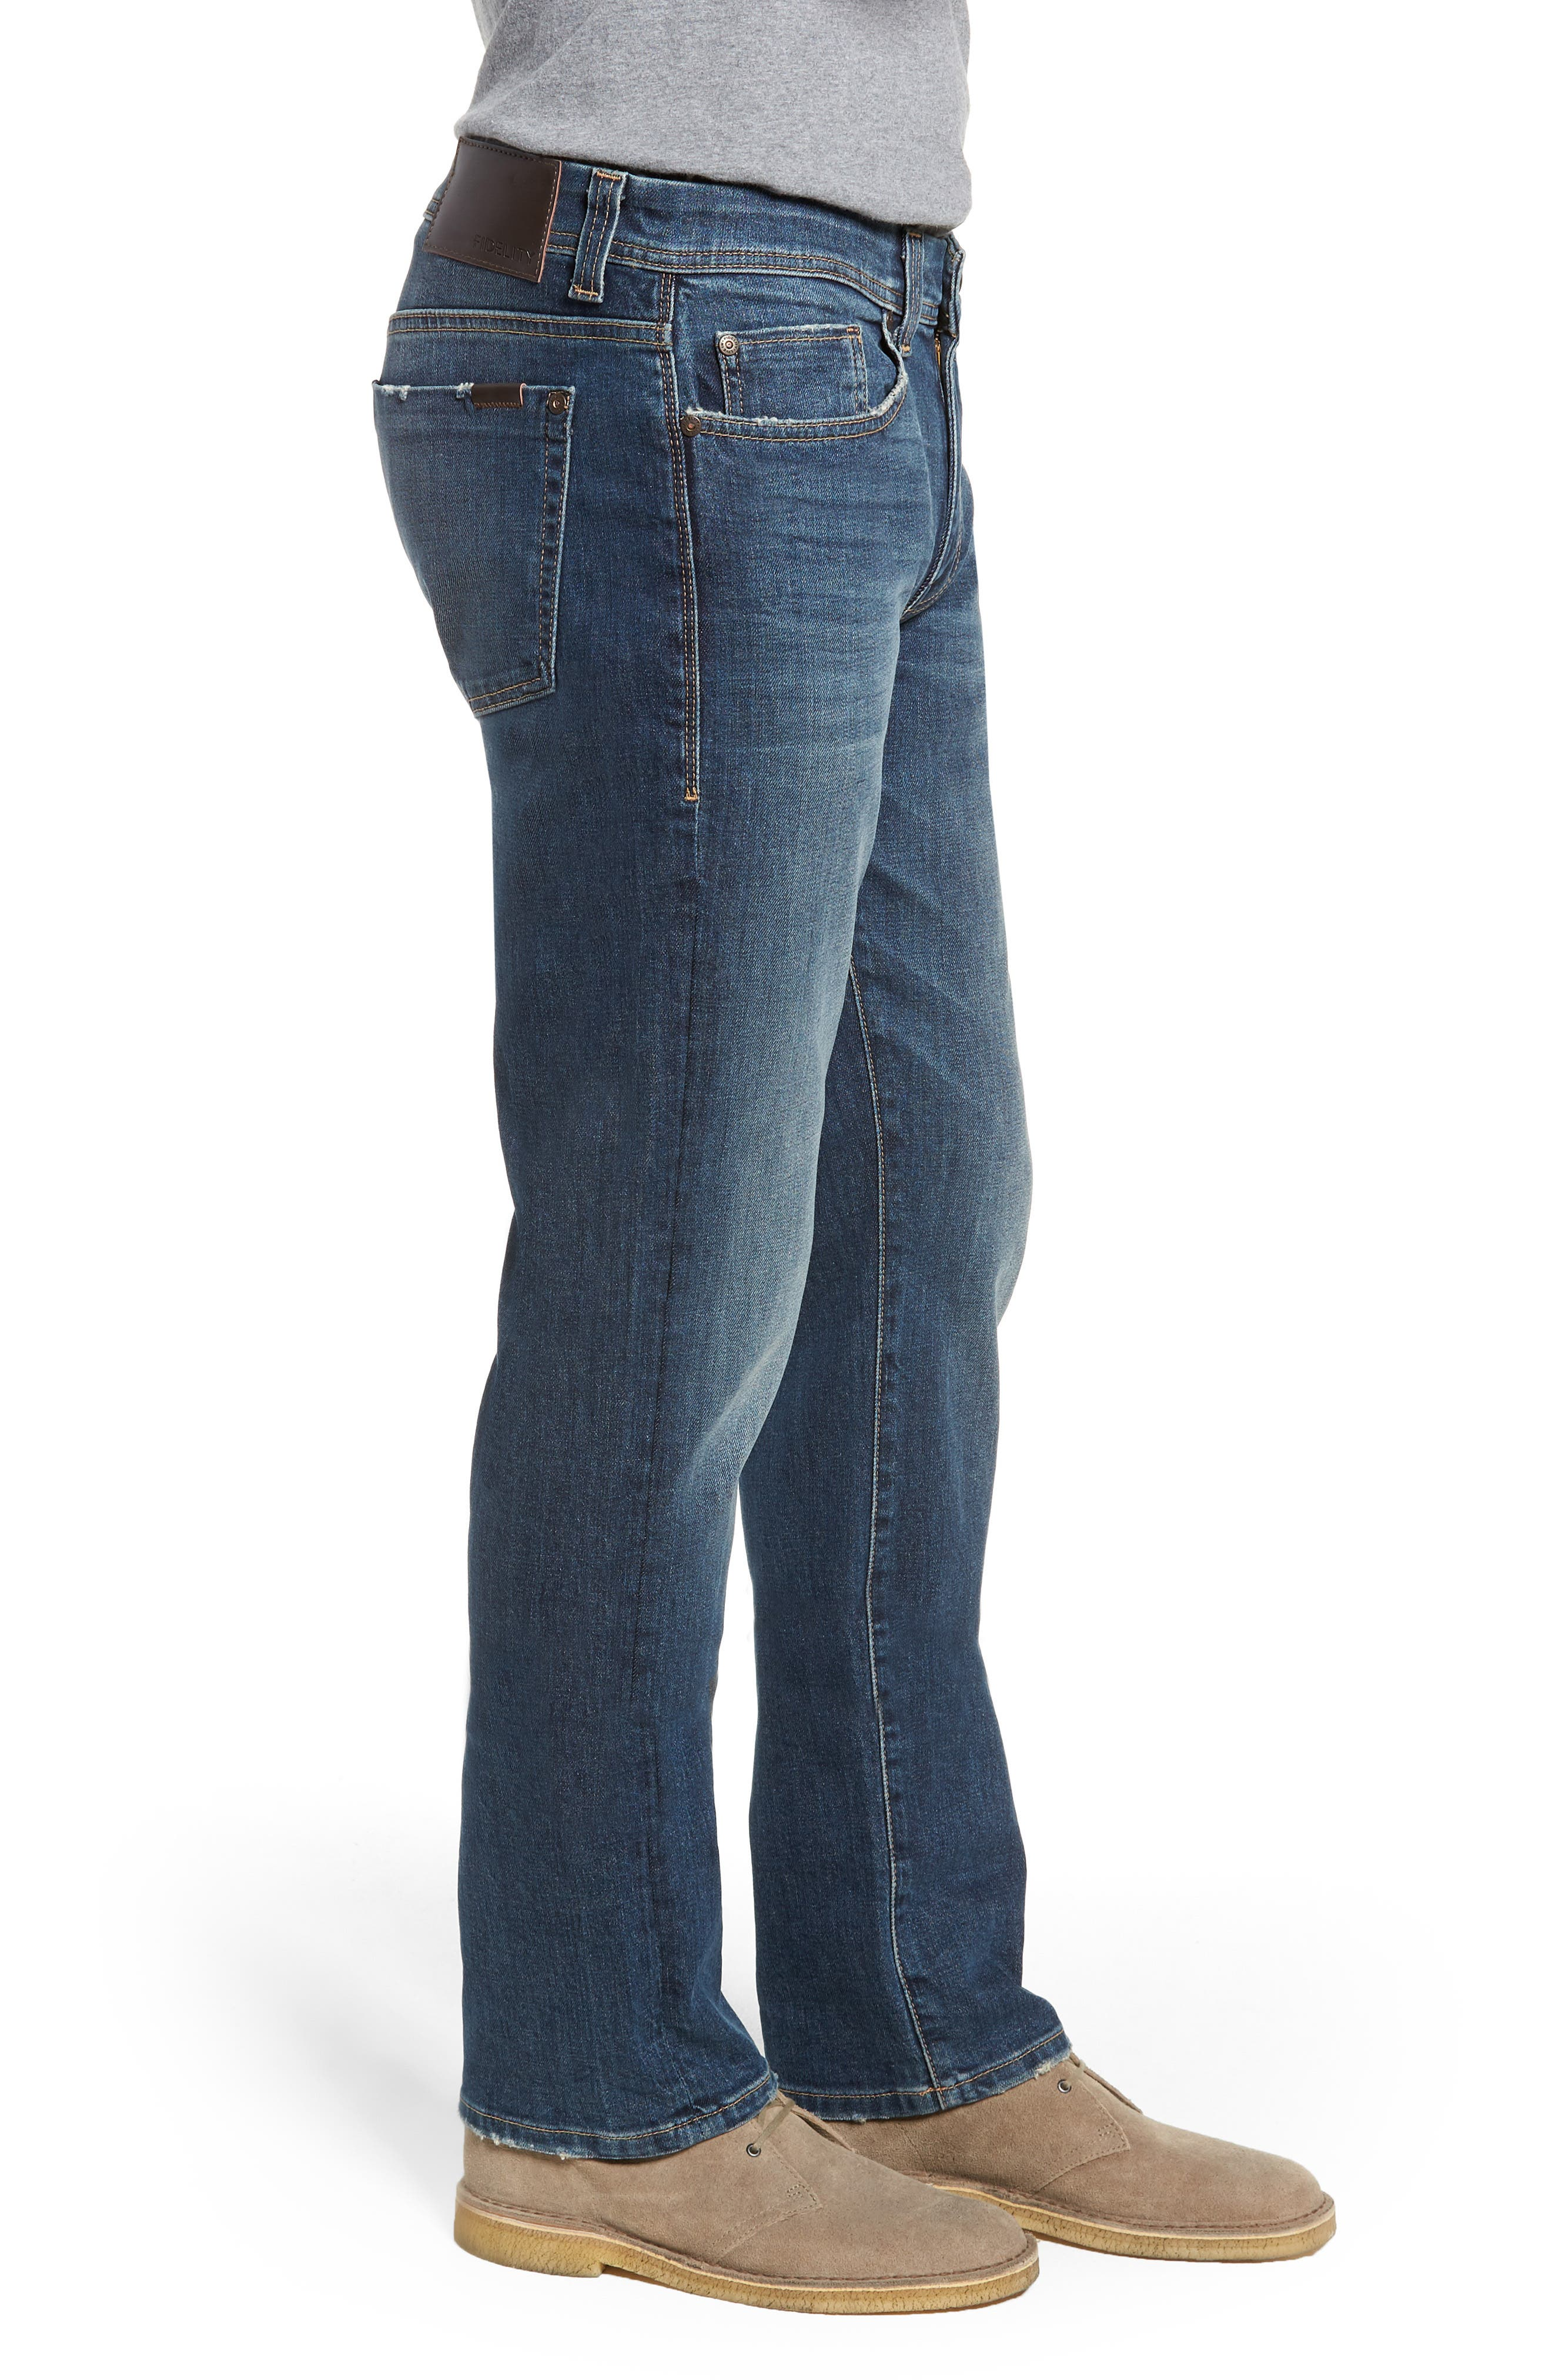 50-11 Relaxed Fit Jeans,                             Alternate thumbnail 3, color,                             GTO VINTAGE